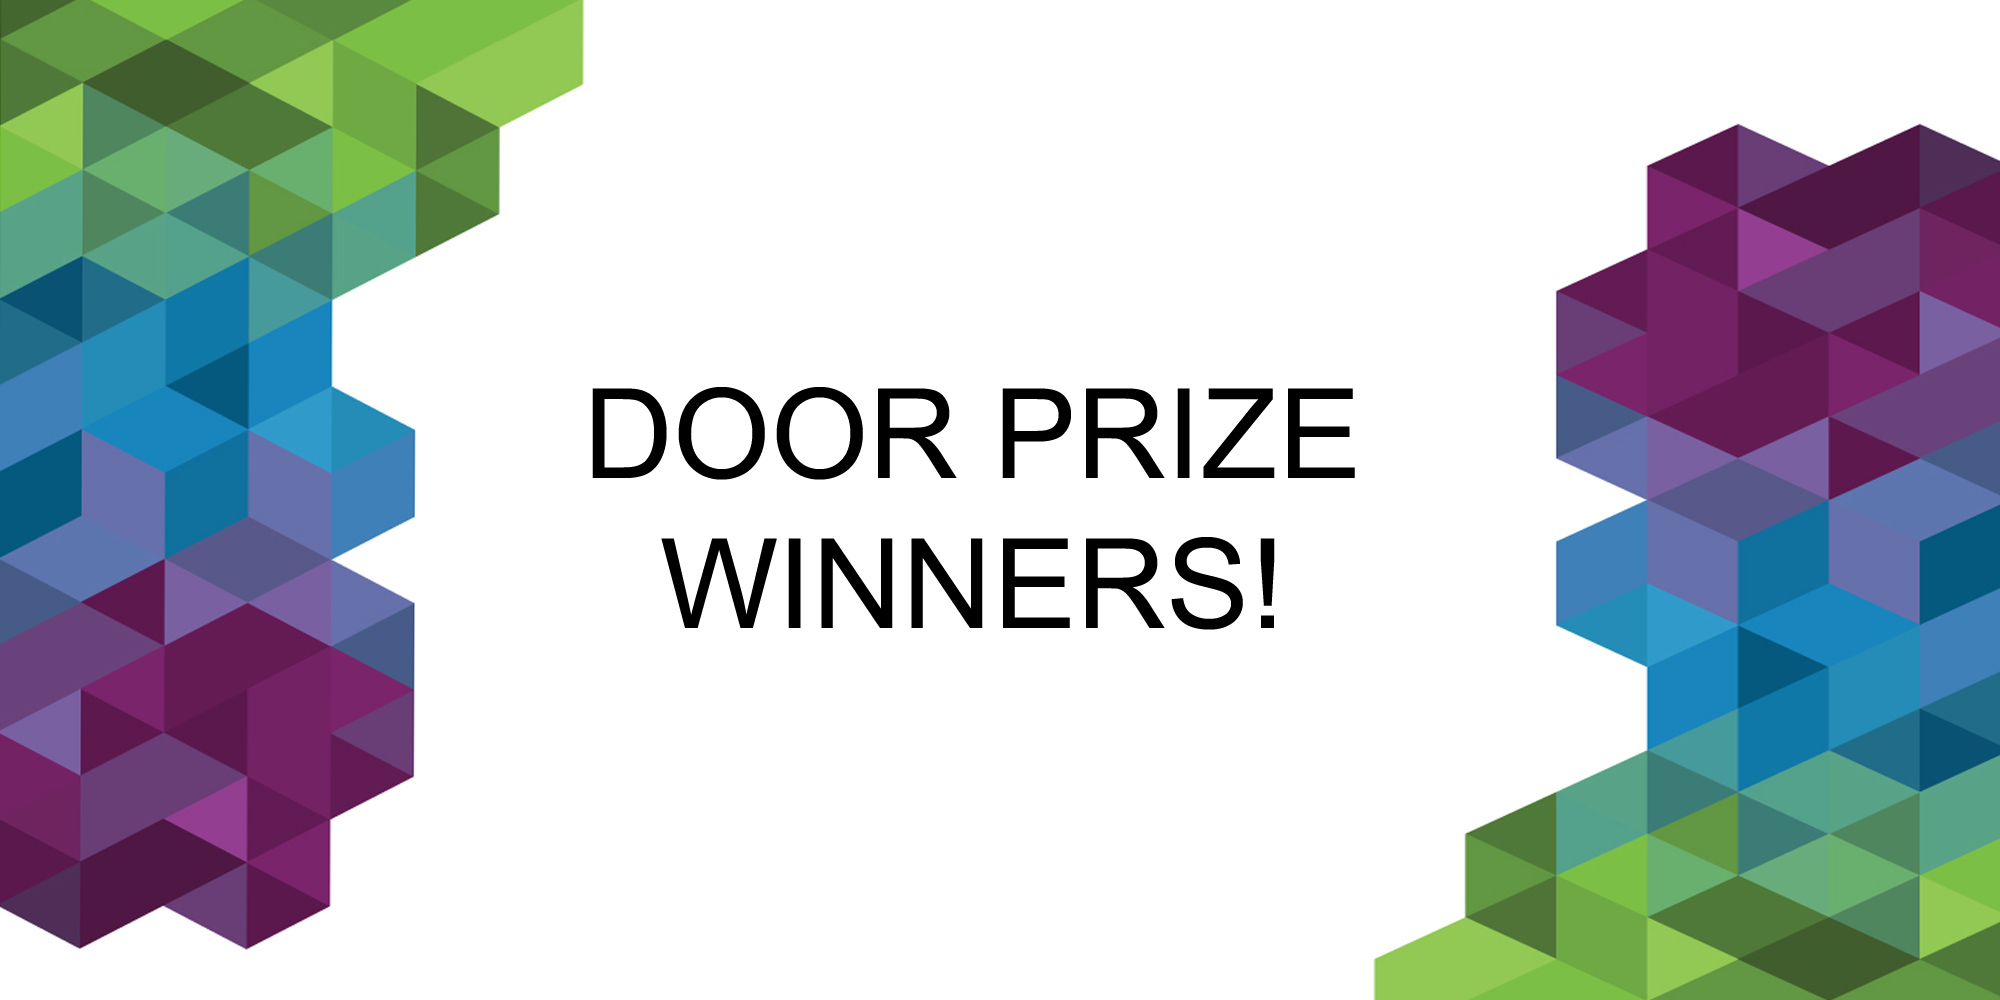 Door Prize Winners for 2018 Small Business BC Awards Announced | Small Business BC  sc 1 st  Small Business BC & Door Prize Winners for 2018 Small Business BC Awards Announced ...